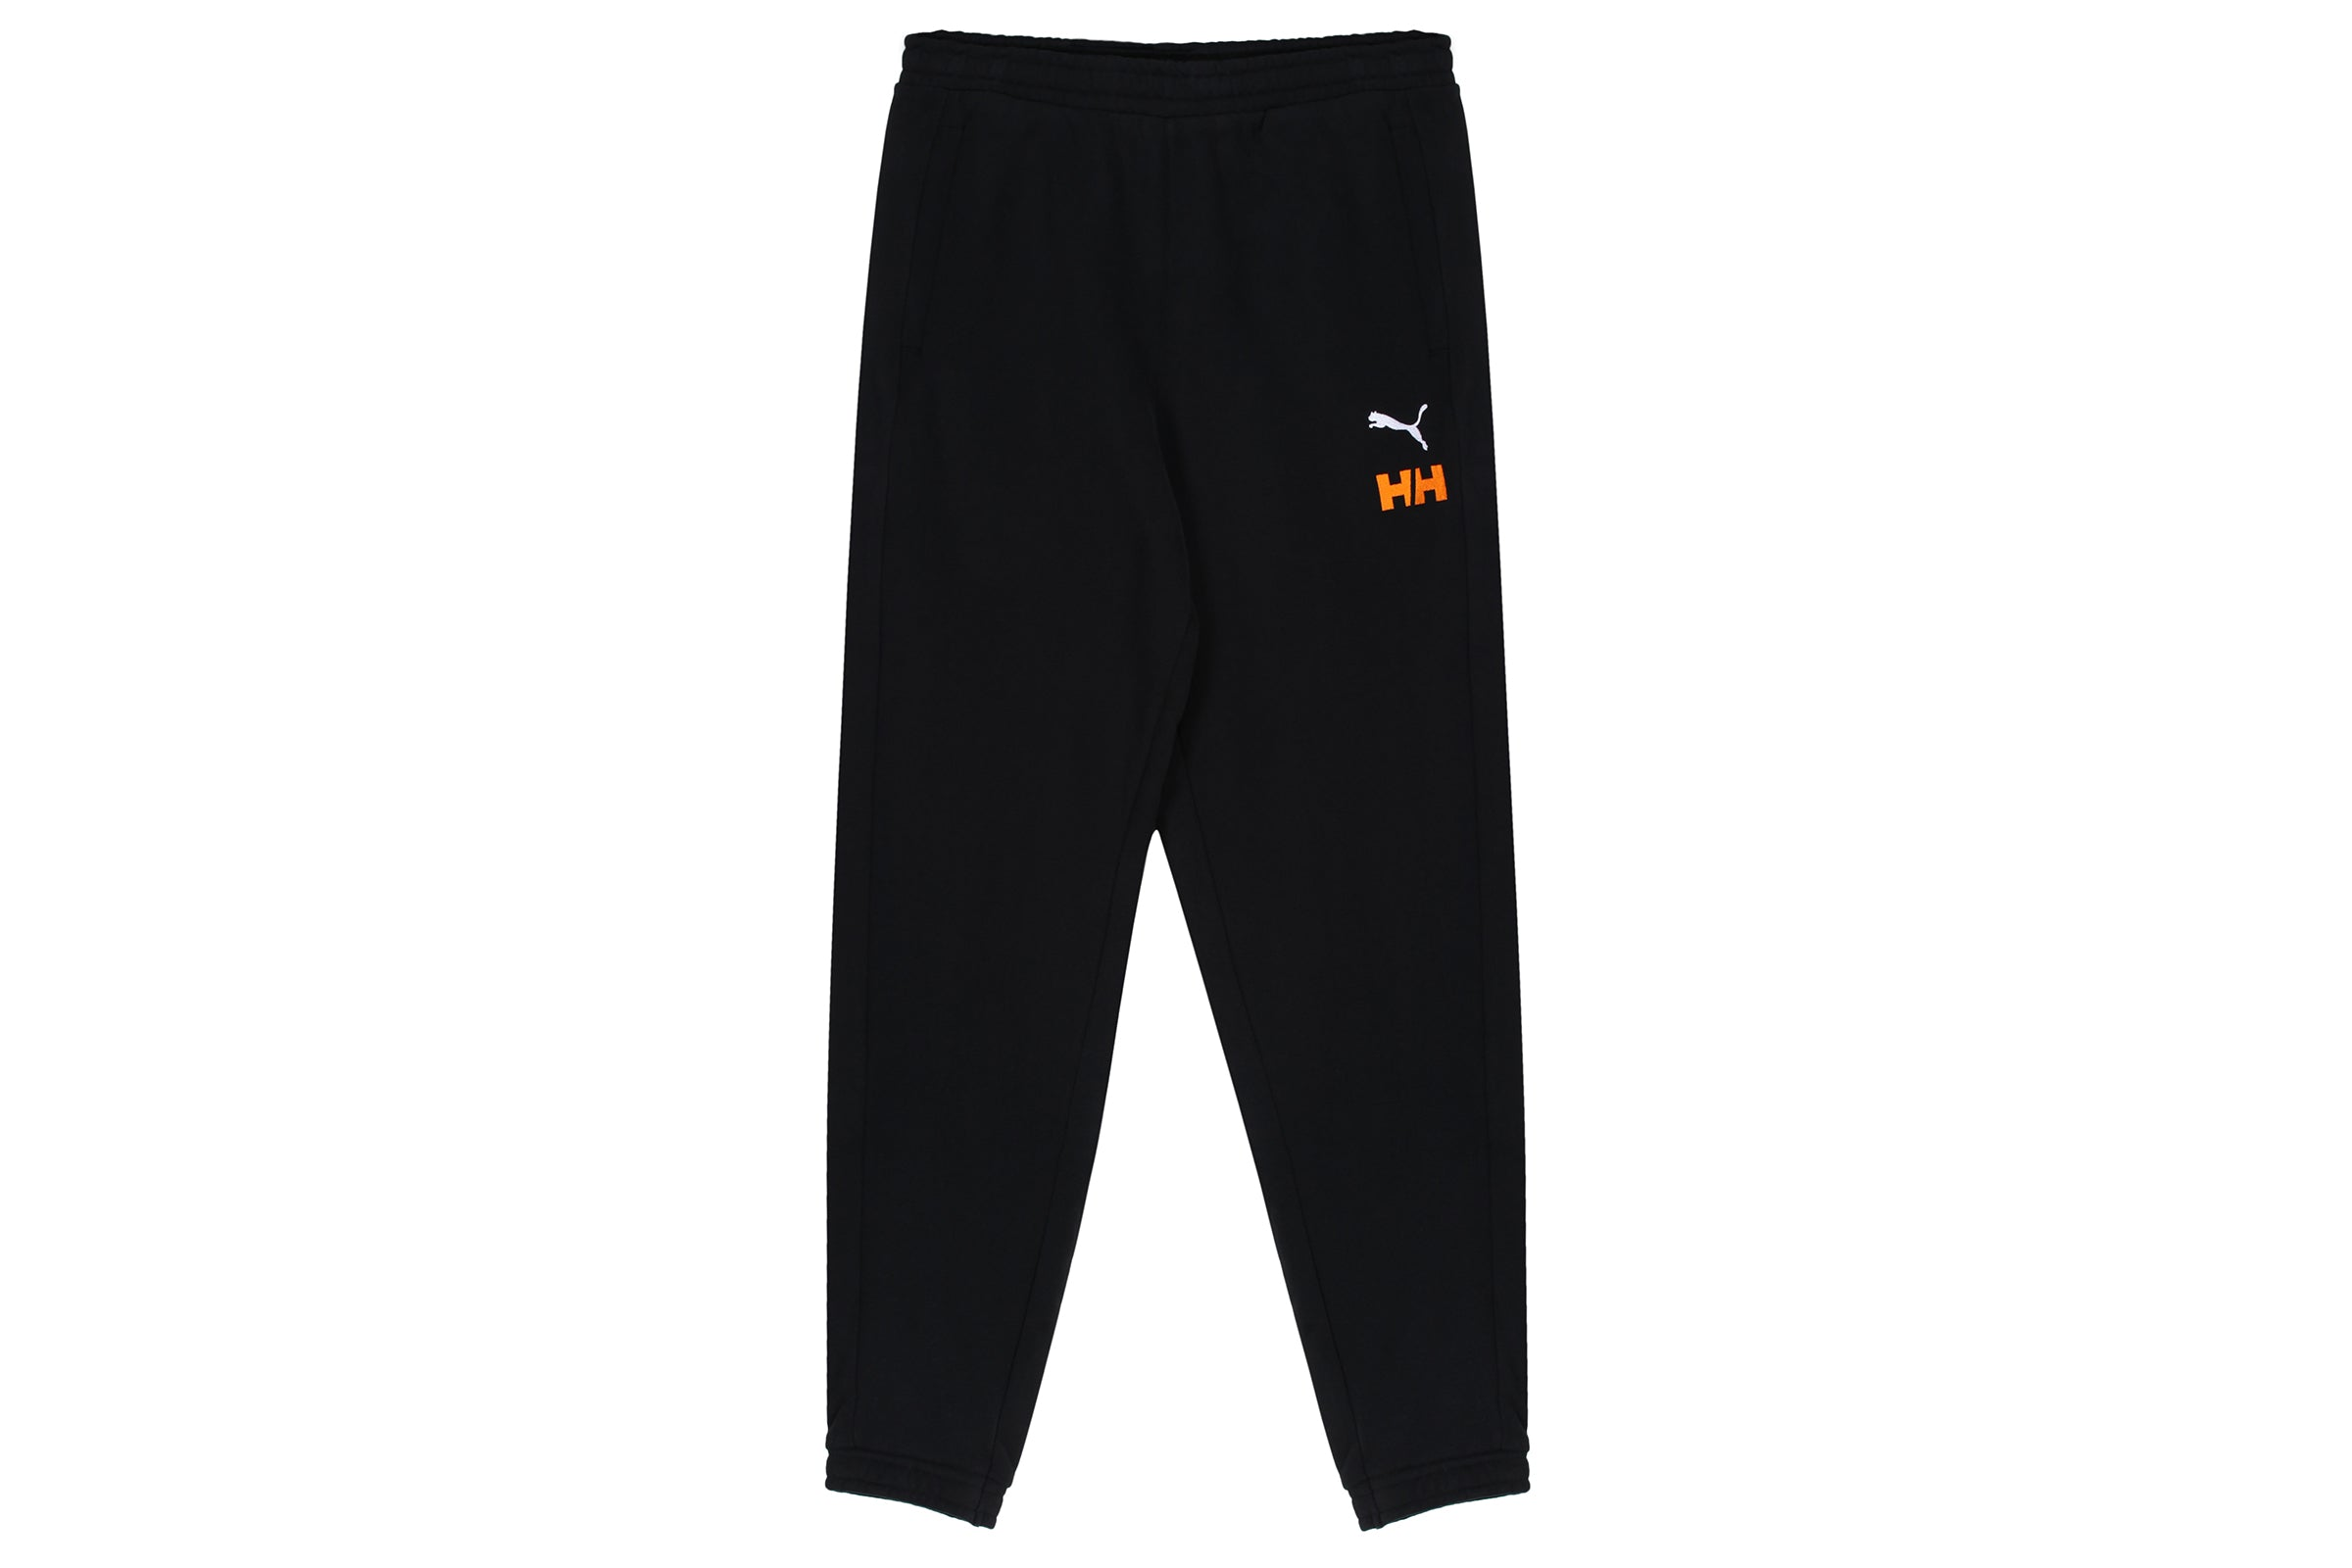 Puma Fleece Pants x Helly Hansen